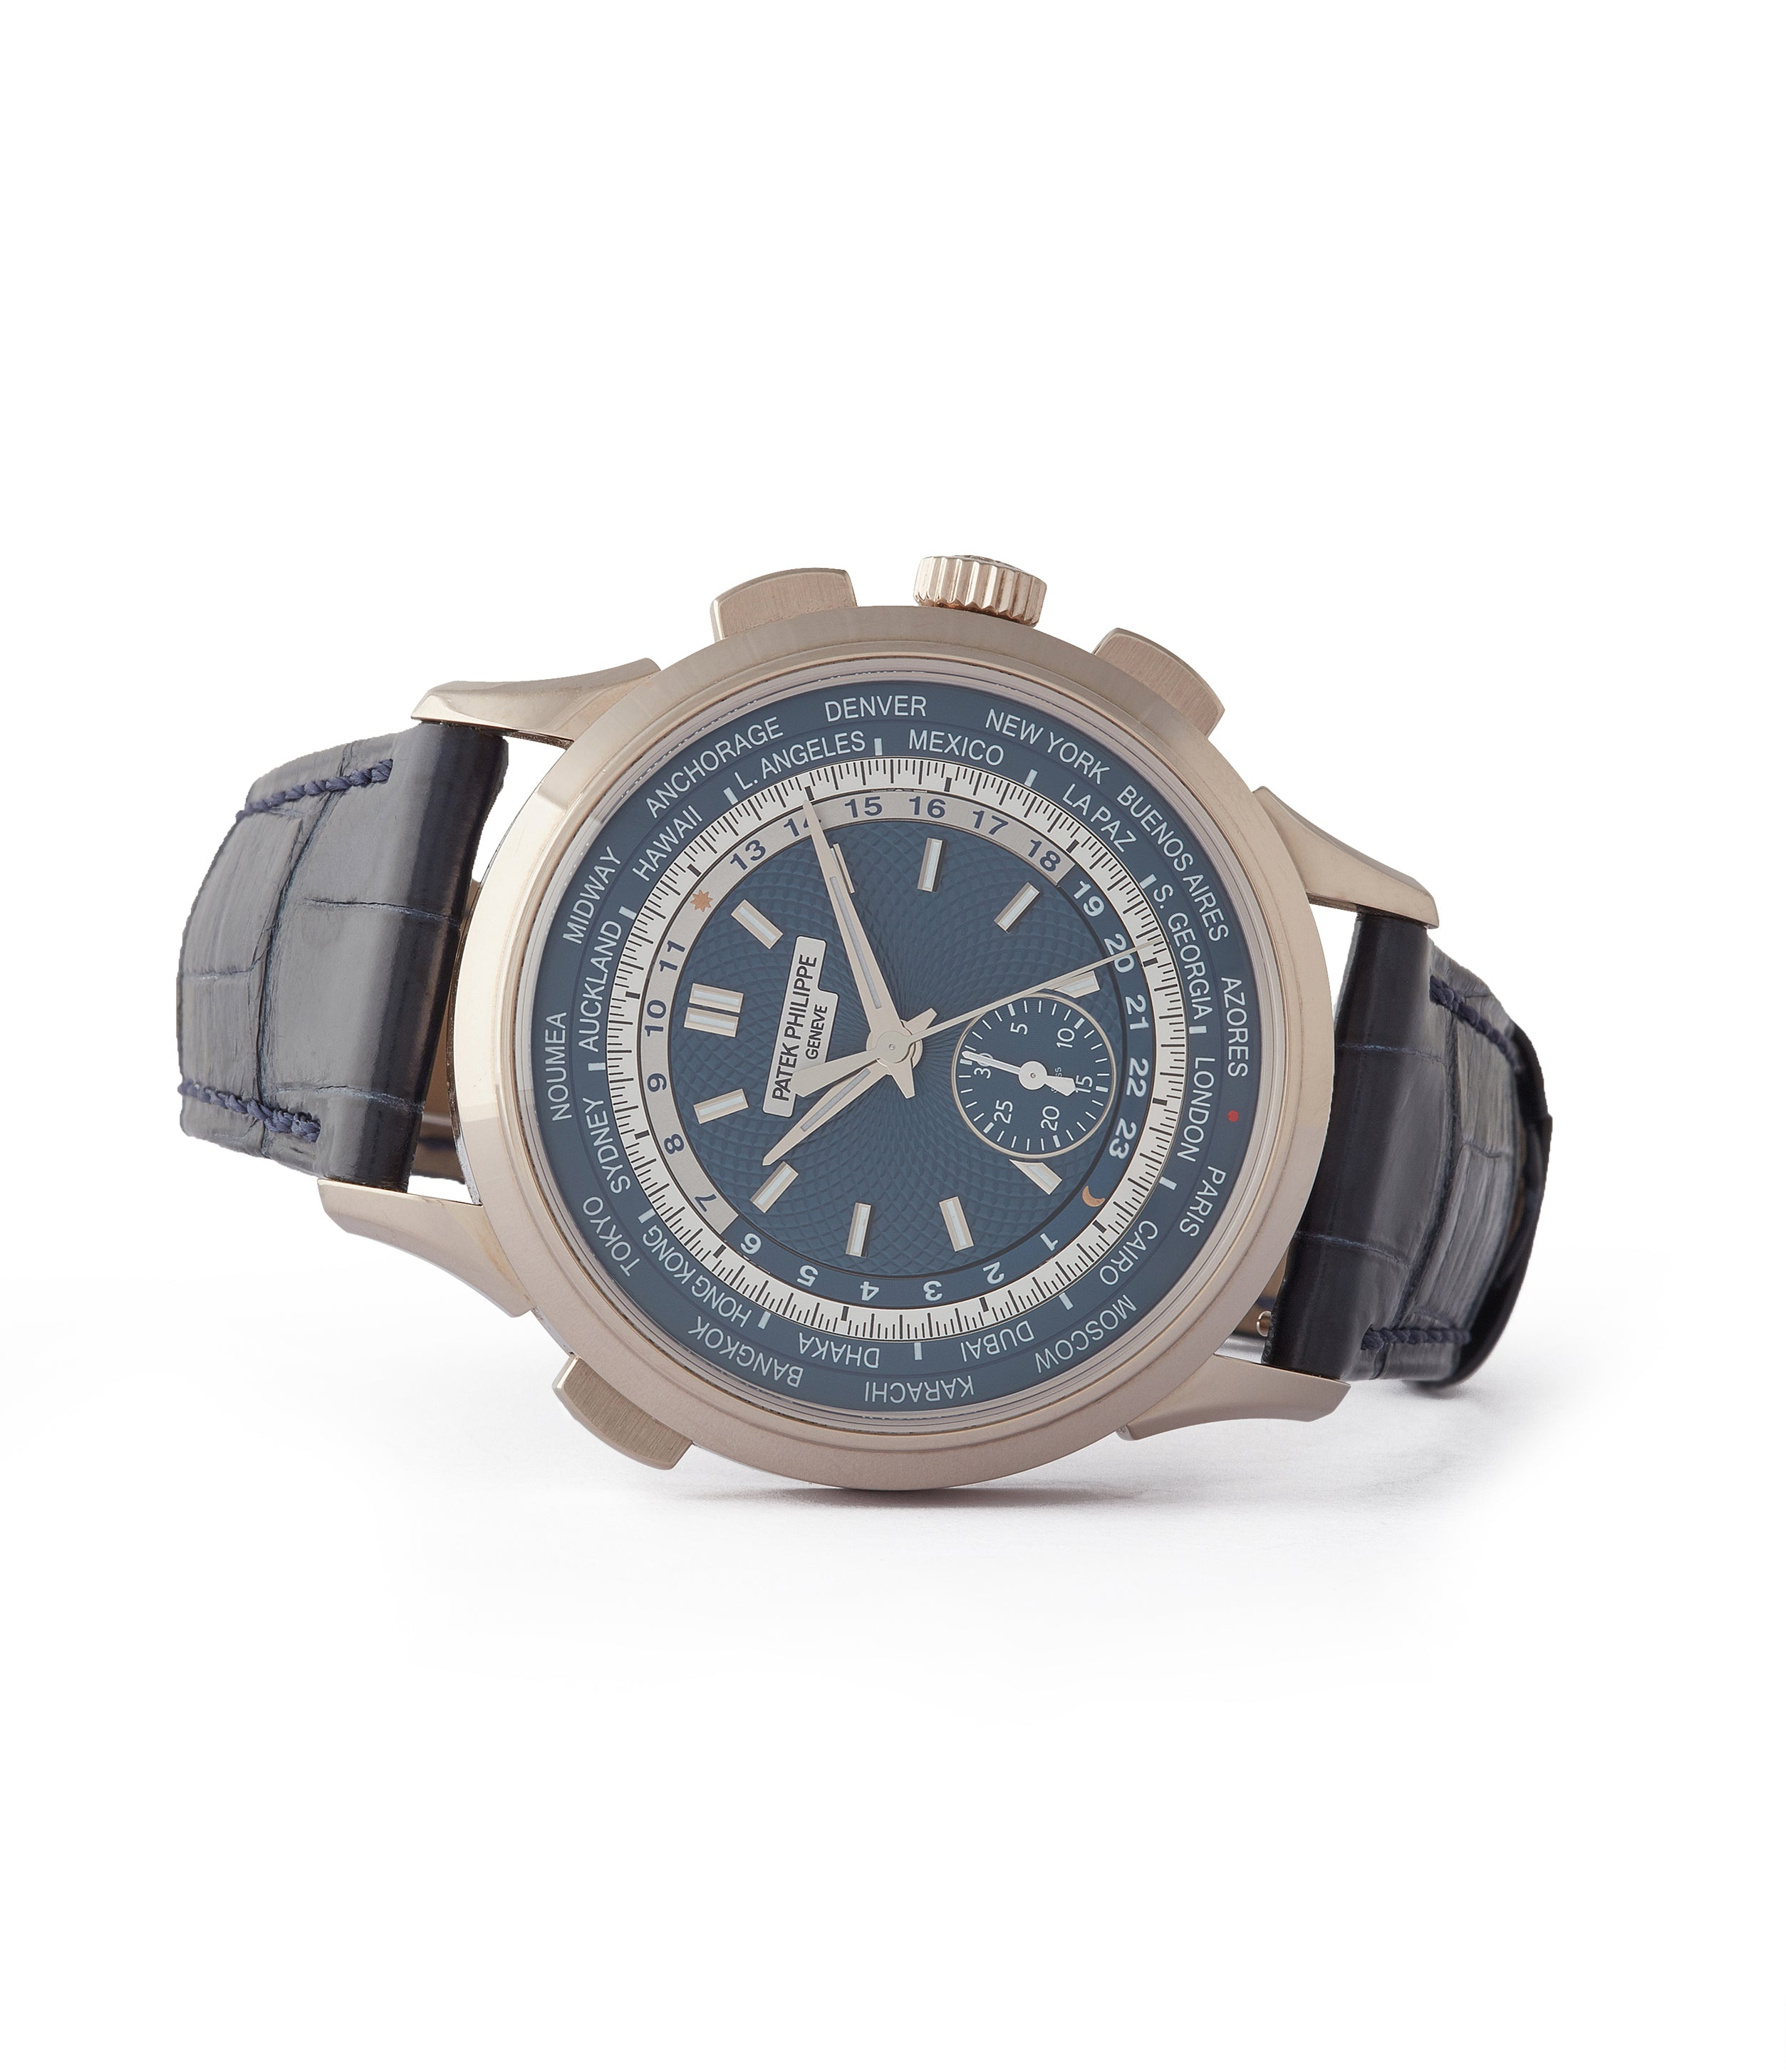 side-shot buy pre-owned Patek Philippe World Time Chronograph 5930G-001 white gold watch blue dial for sale online at A Collected Man London